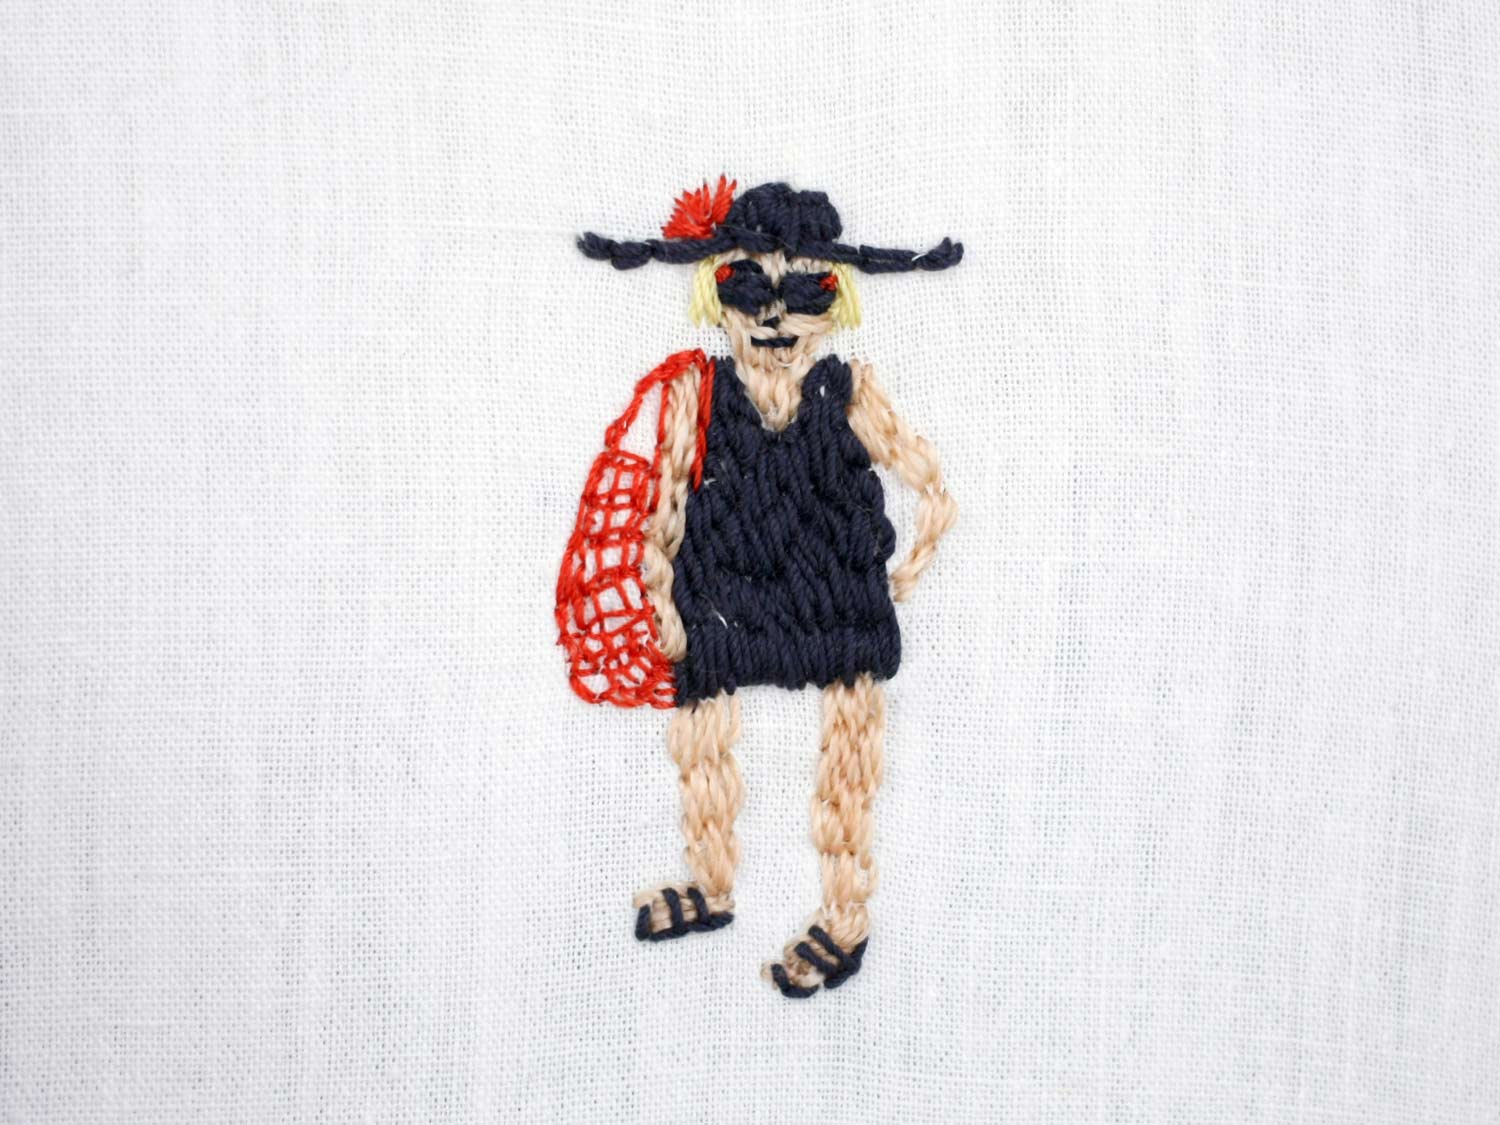 Broderie personnages